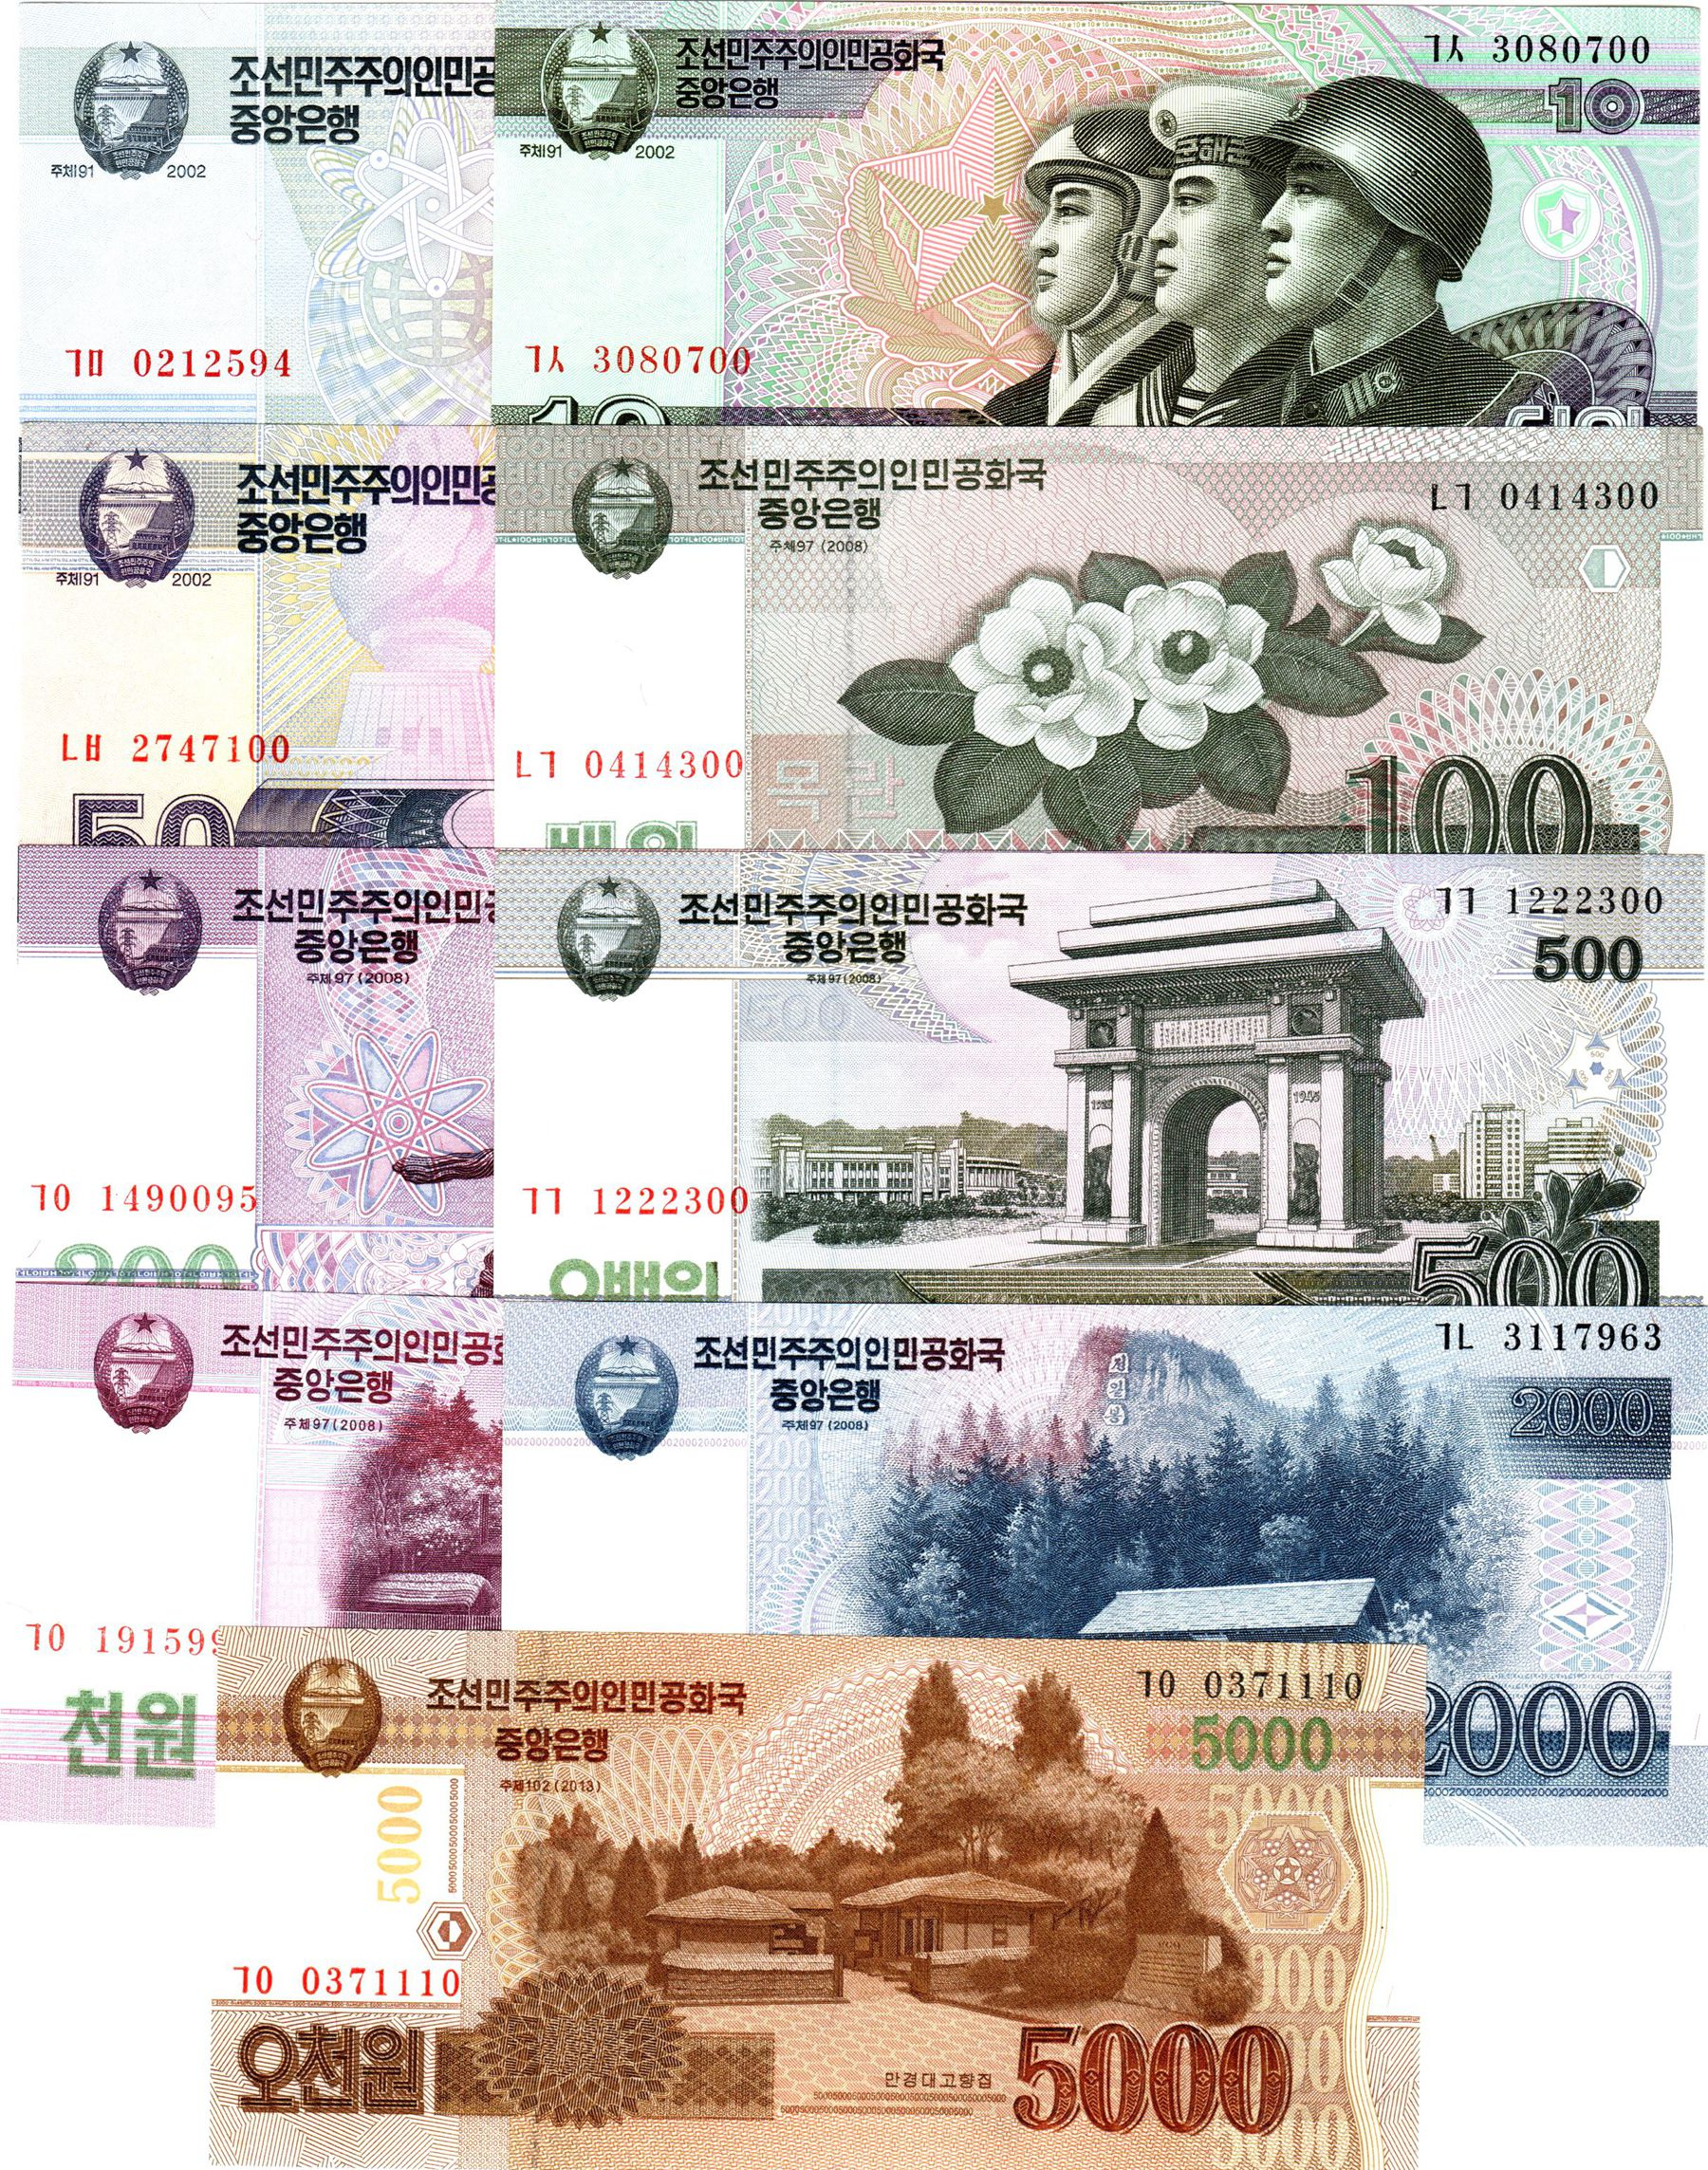 L1101, Korea 2009 Full Set 9 pieces Banknotes, 5 to 5000 Won